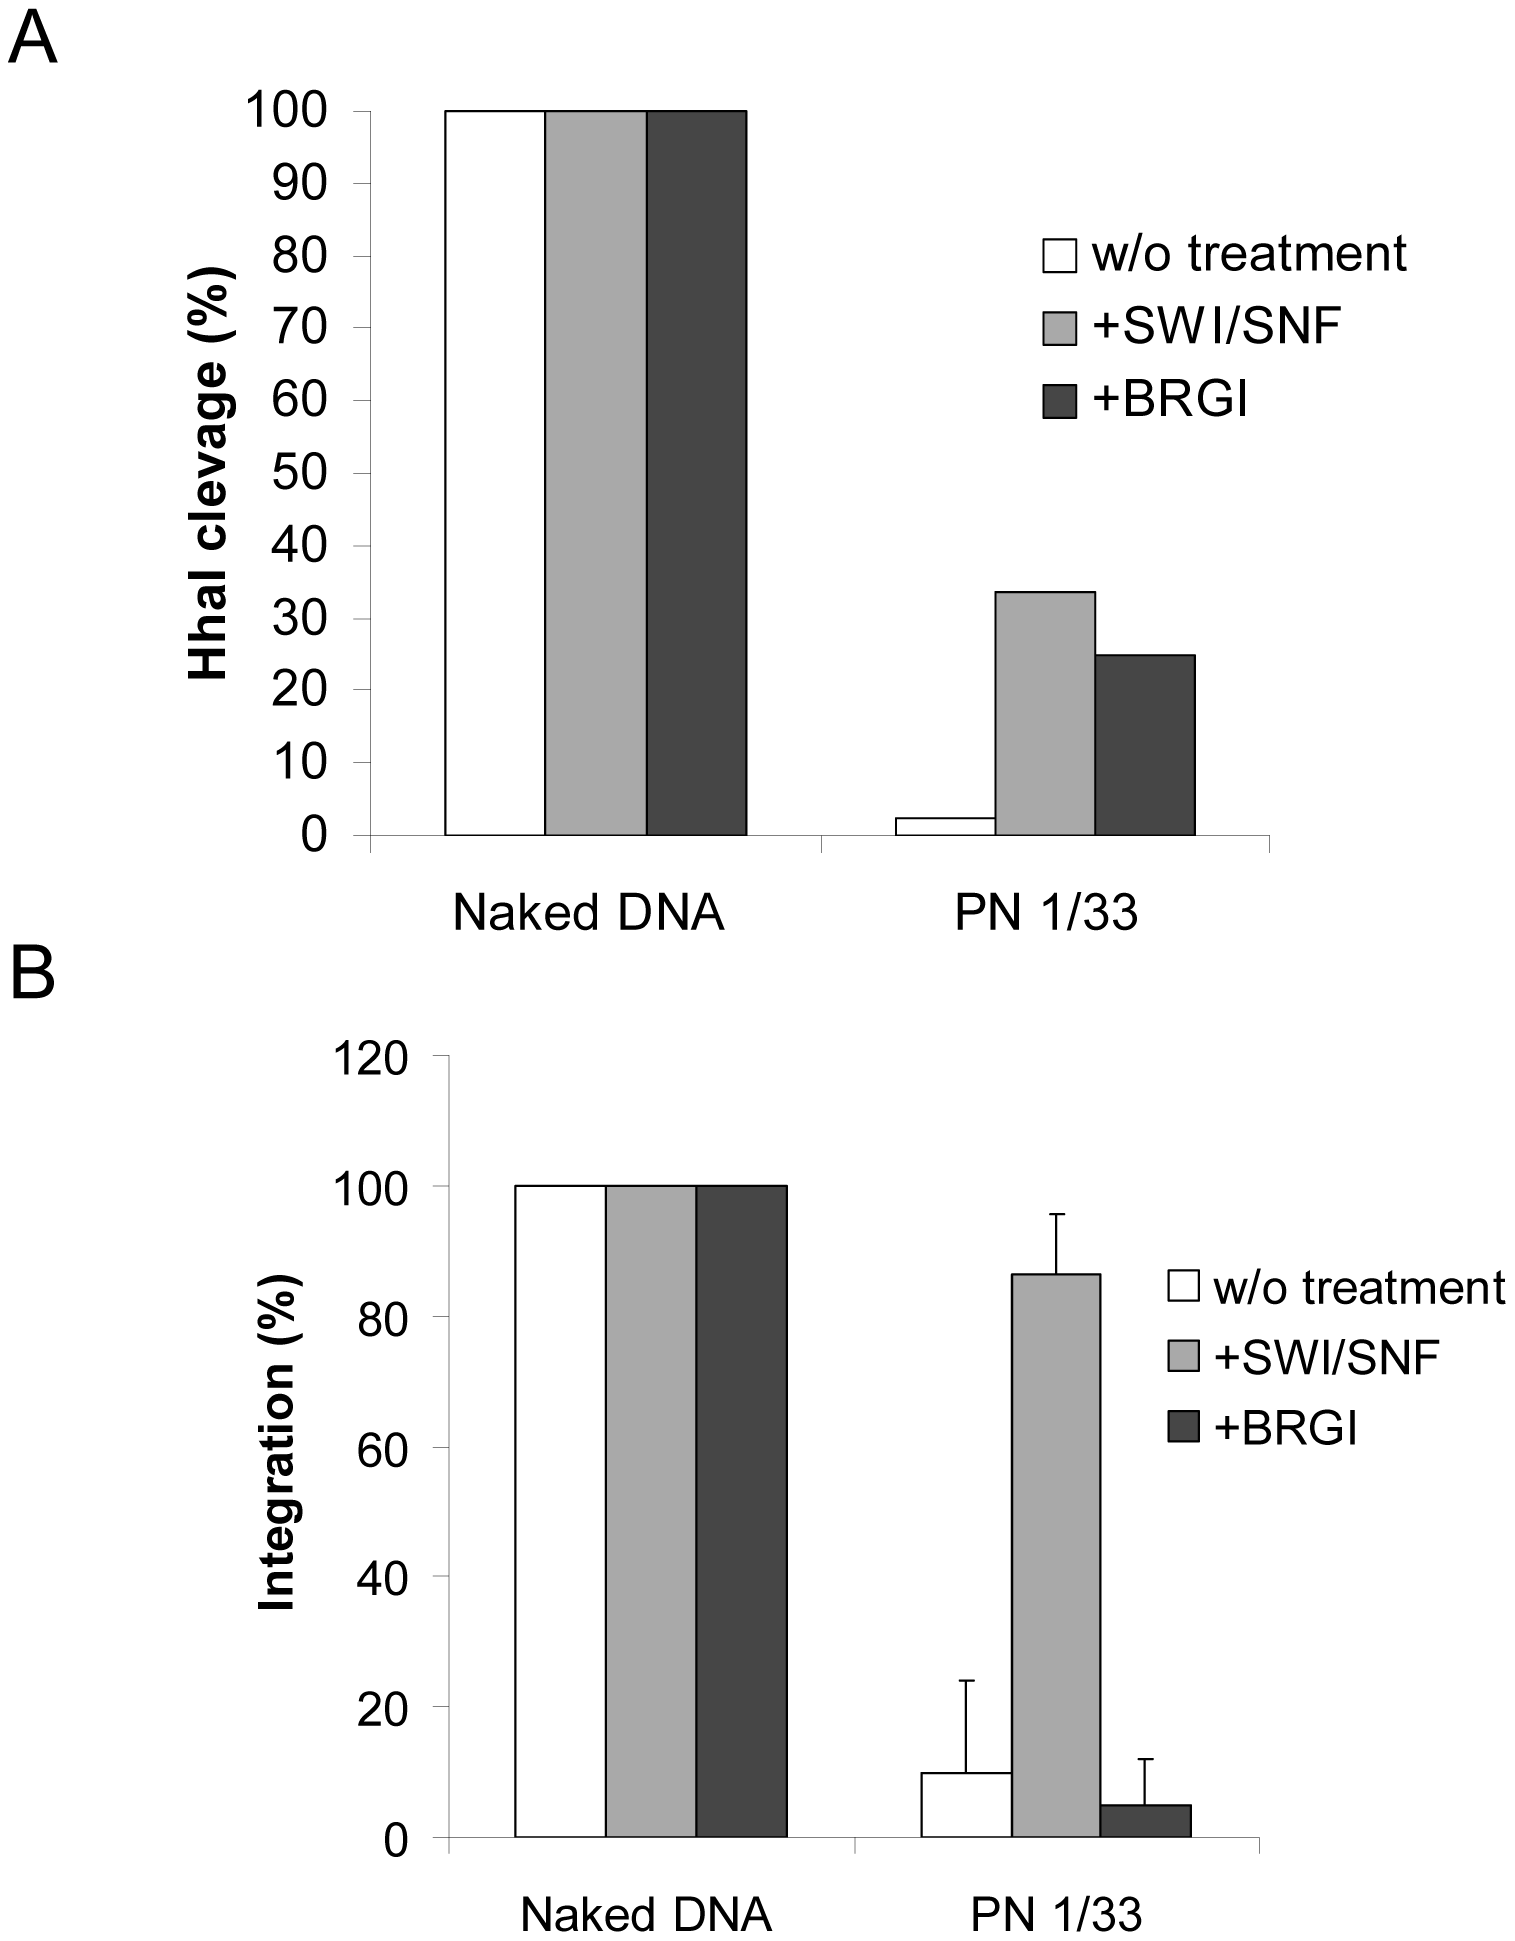 Comparison between the effect of nucleosome remodeling by BRG1 or SWI/SNF on <i>in vitro</i> integration into PN.